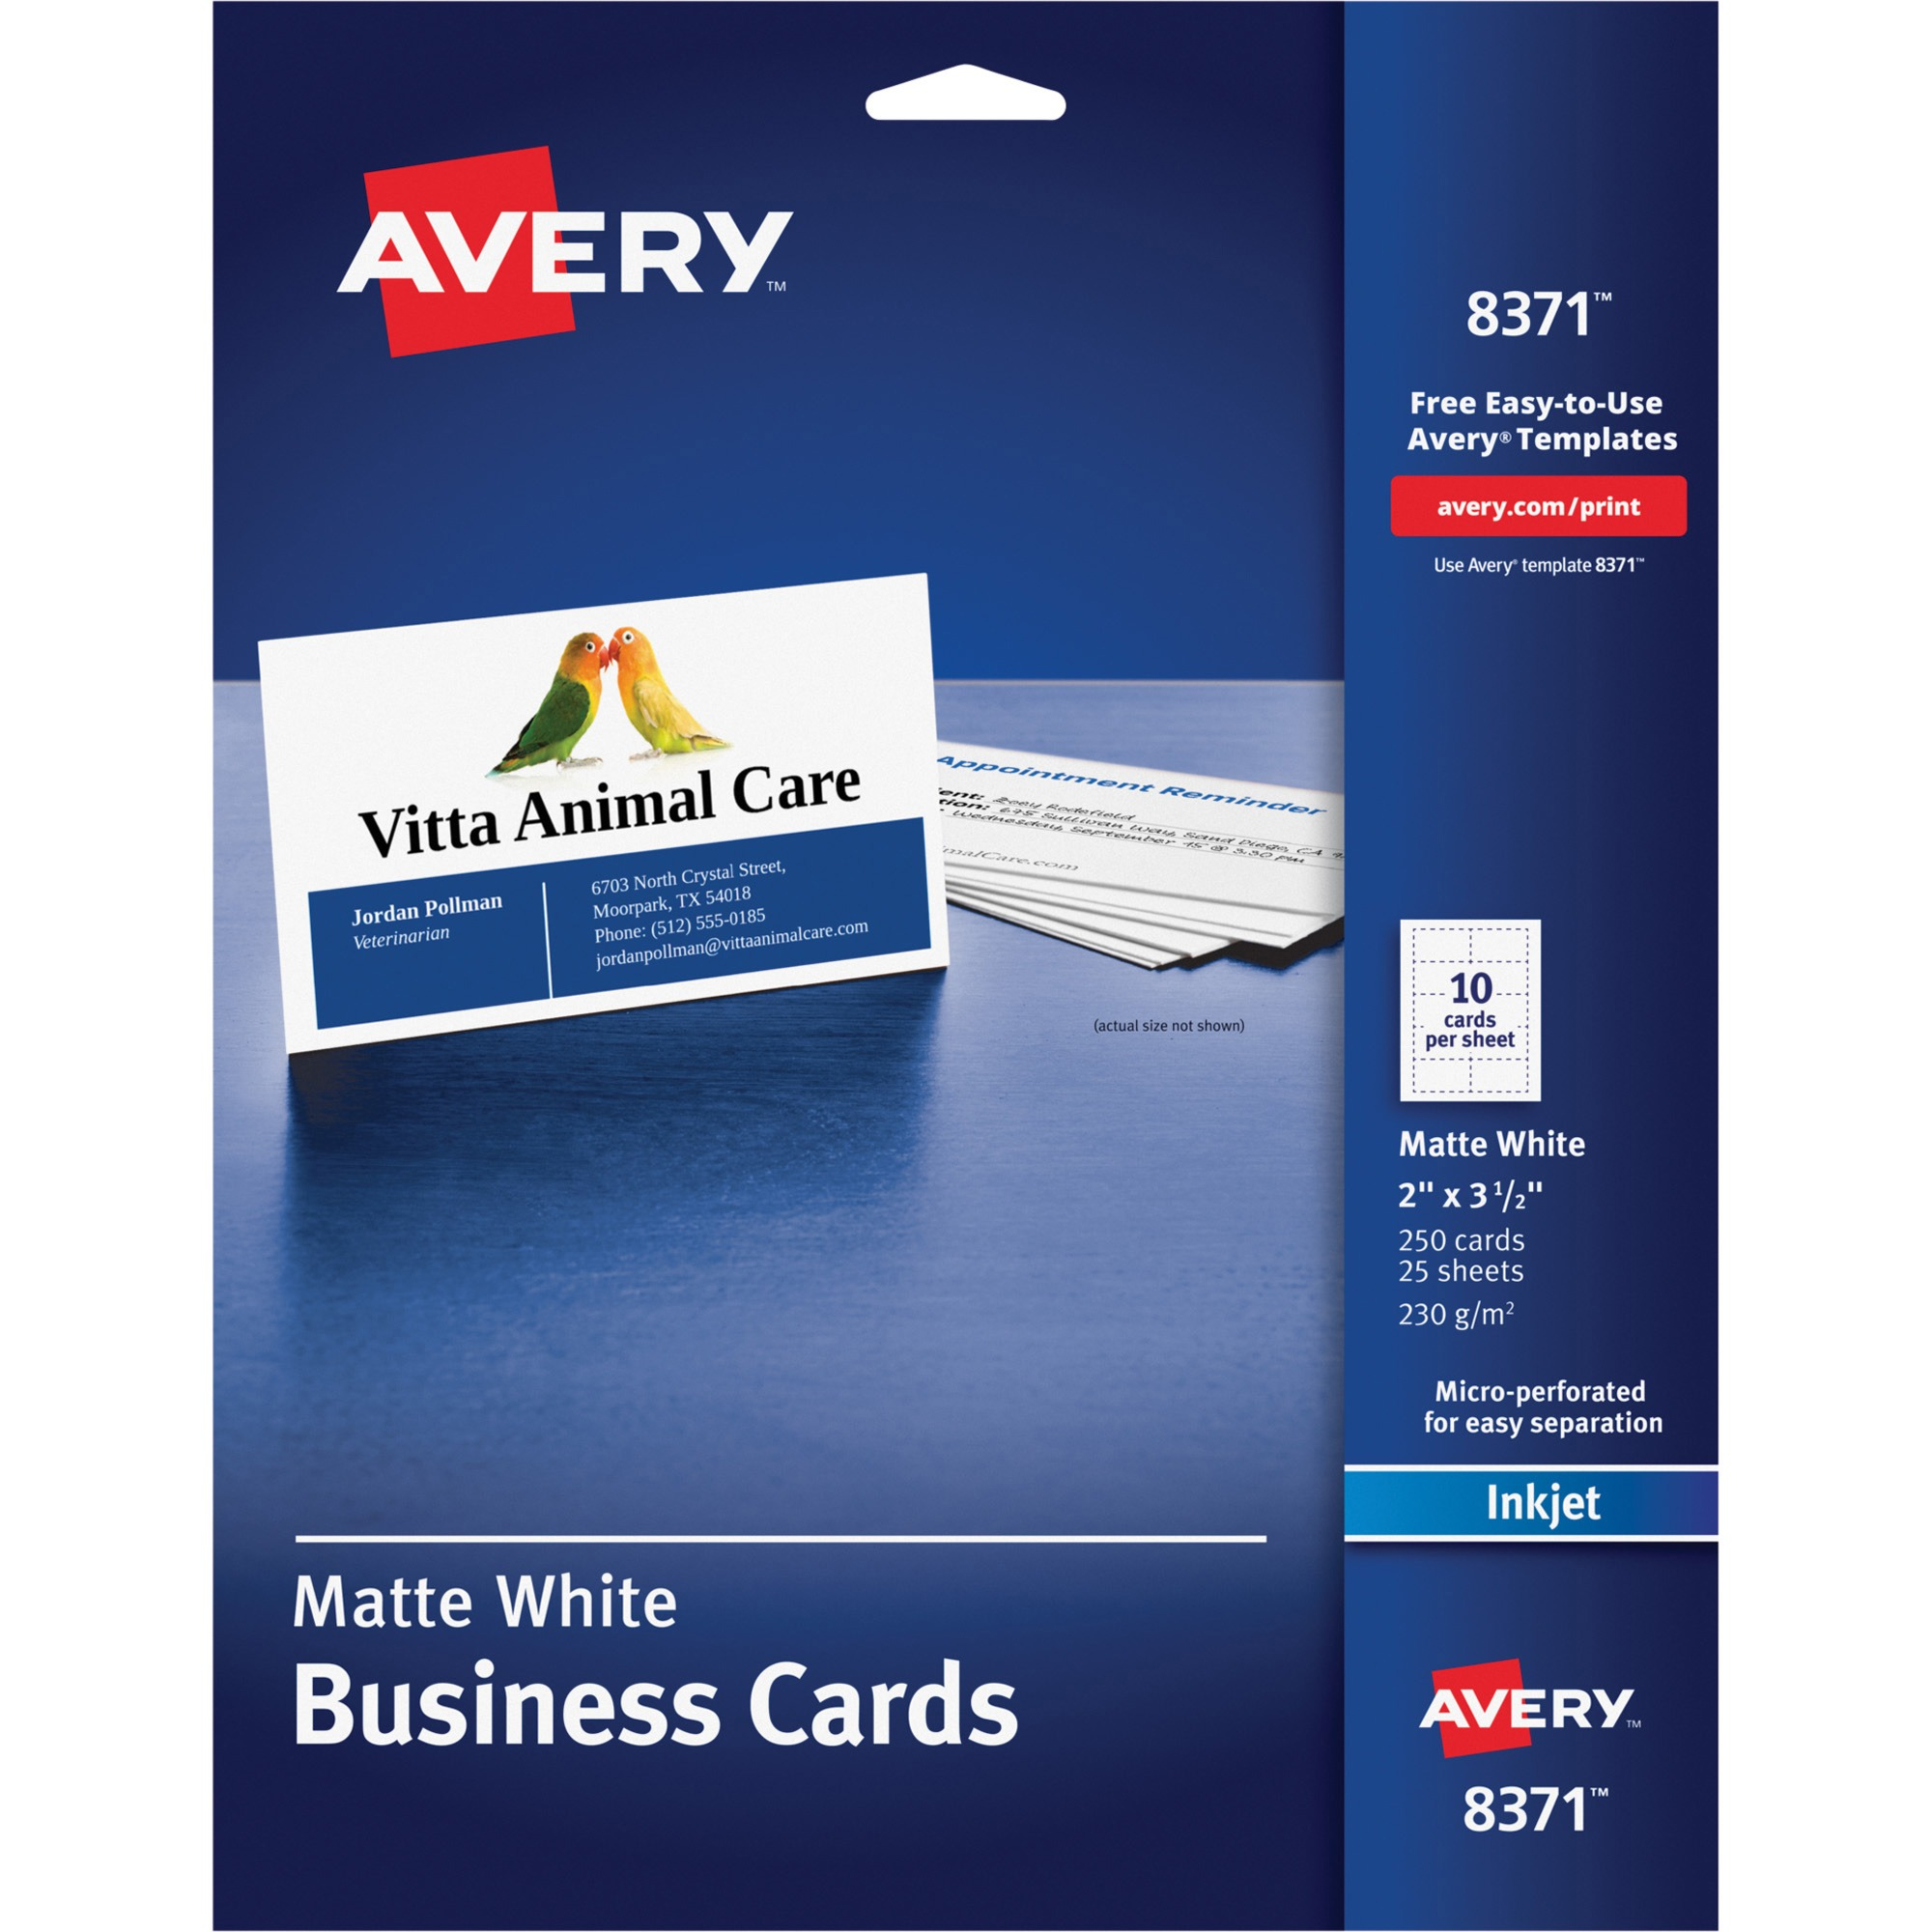 Inkjet Microperforated Business Cards - Walmart.com